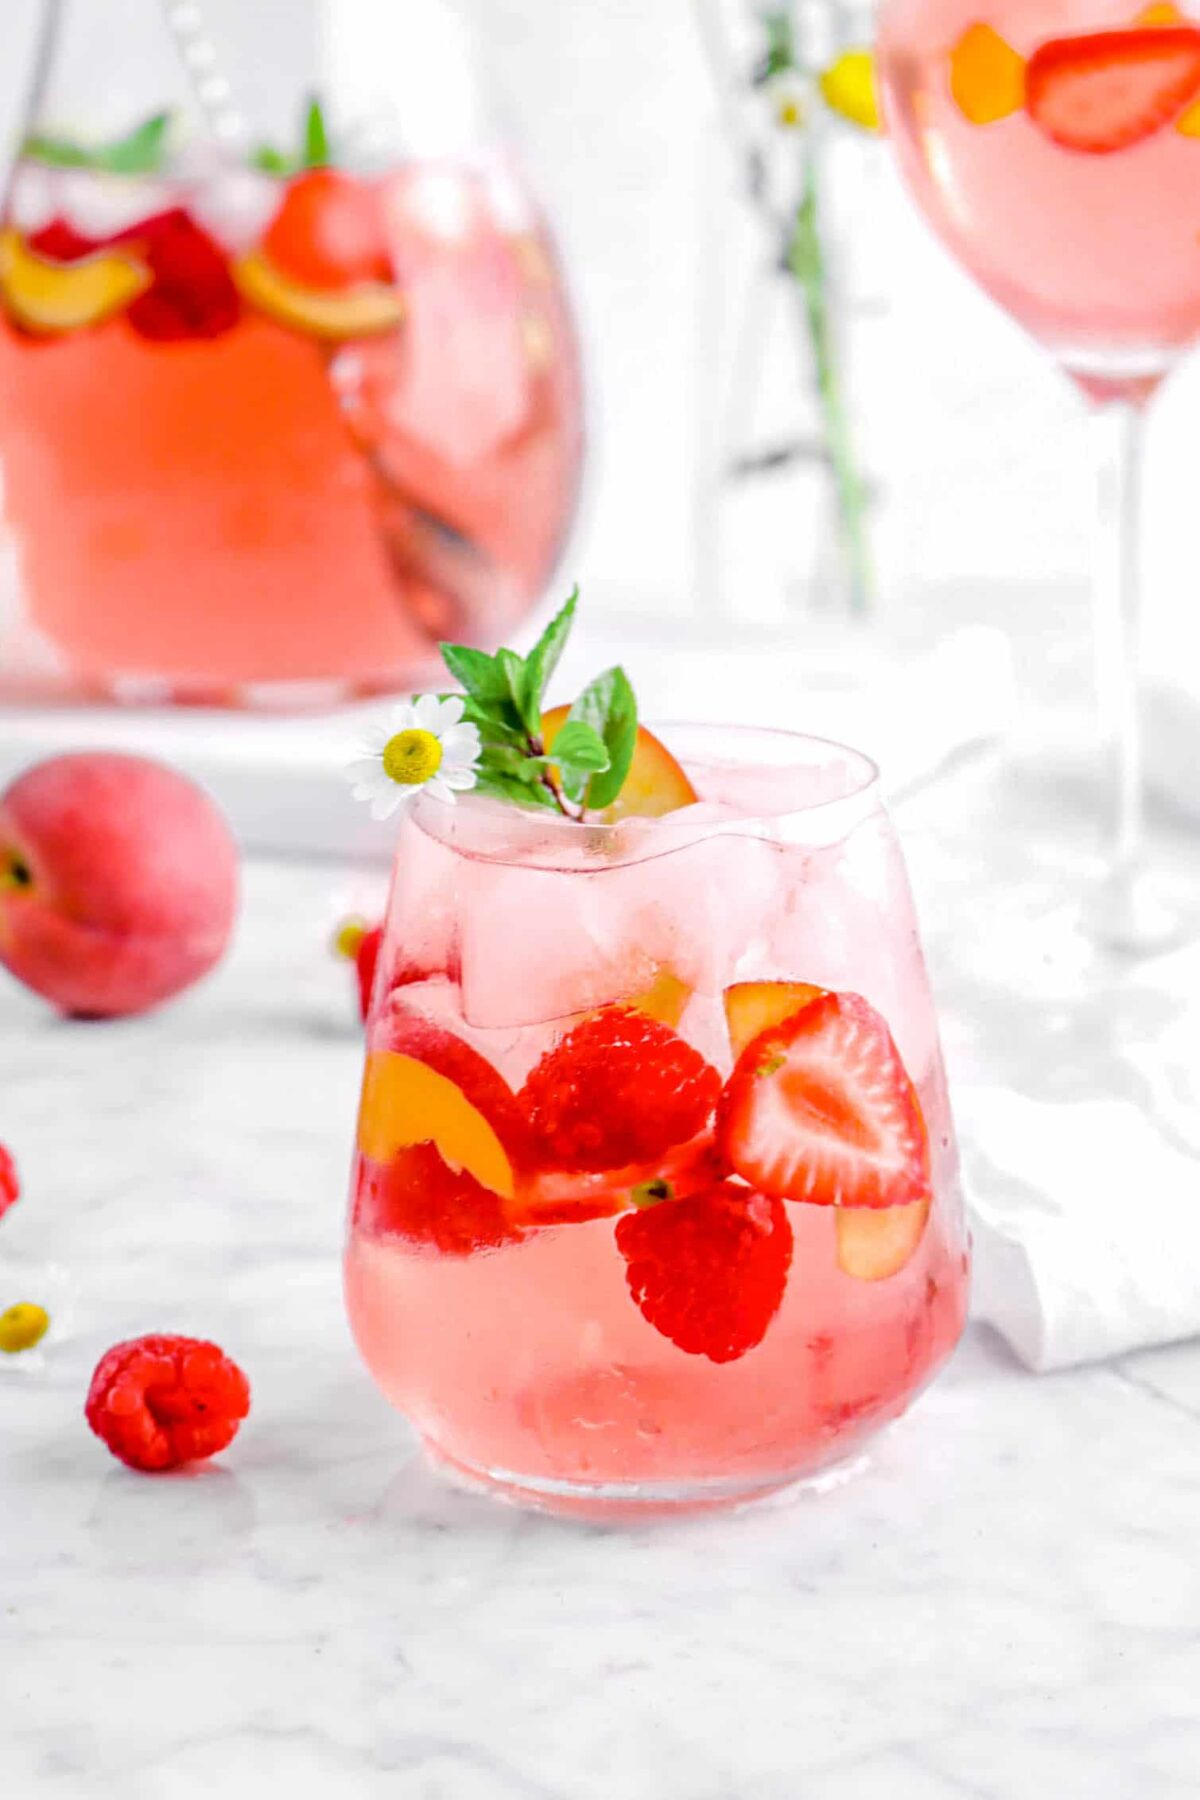 peach moscato with berries in the glass, a flower, and a sprig of mint